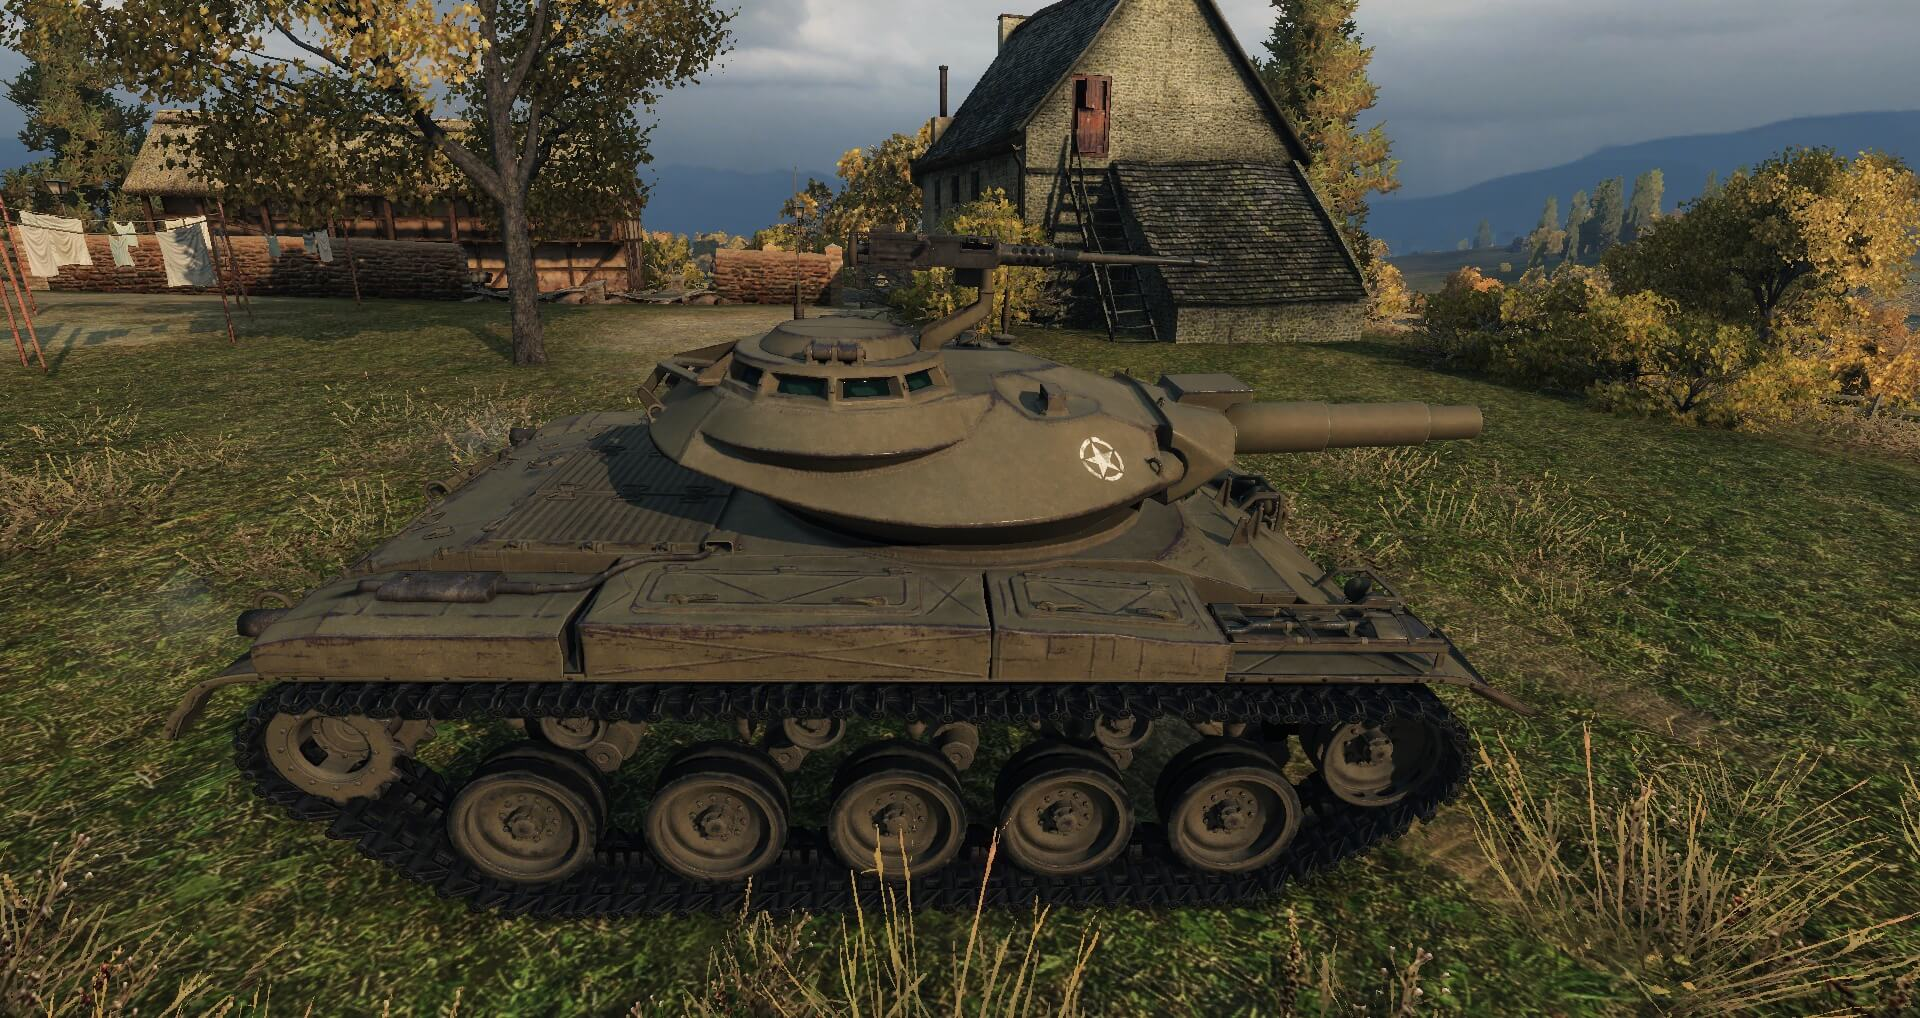 Huge 9.3 Tank info leak - Must read.RU-251 (German) — speedy combat vehicle with a decent cannon.T49 LT (USA) — classic light tank, or a crazy bomber with a 152mm barrel? It is up for you to decide!Т-54 light (USSR) — maneuverable and comfortable to handle, capable of fulfilling a wide range of tasks.more than 400 new vehicles are still planned for World of Tanks